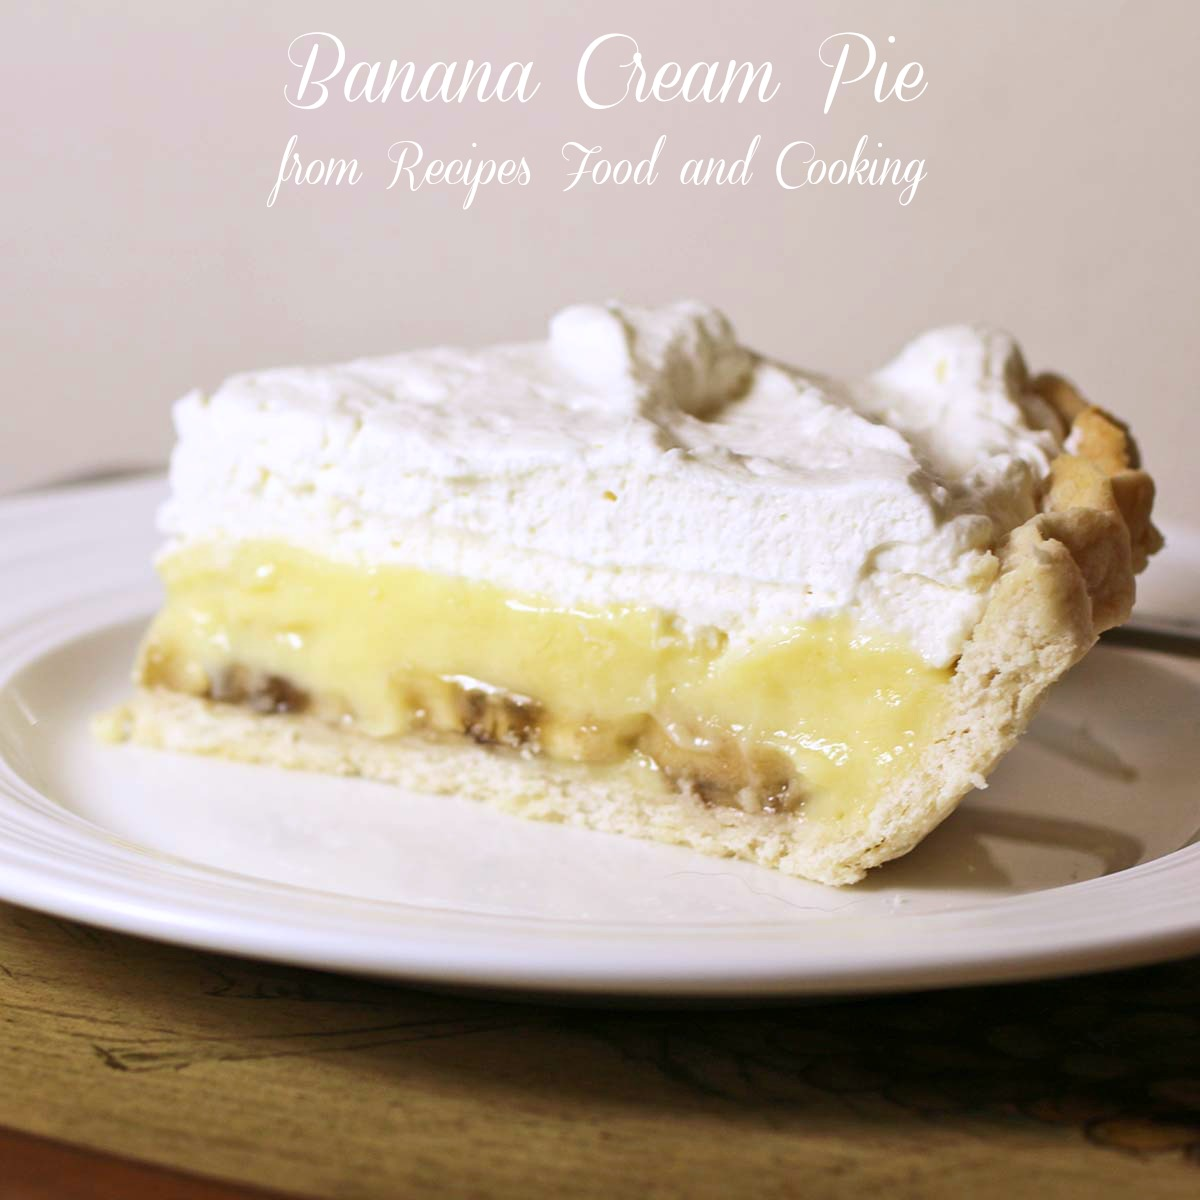 Banana Cream Pie #SundaySupper - Recipes Food and Cooking